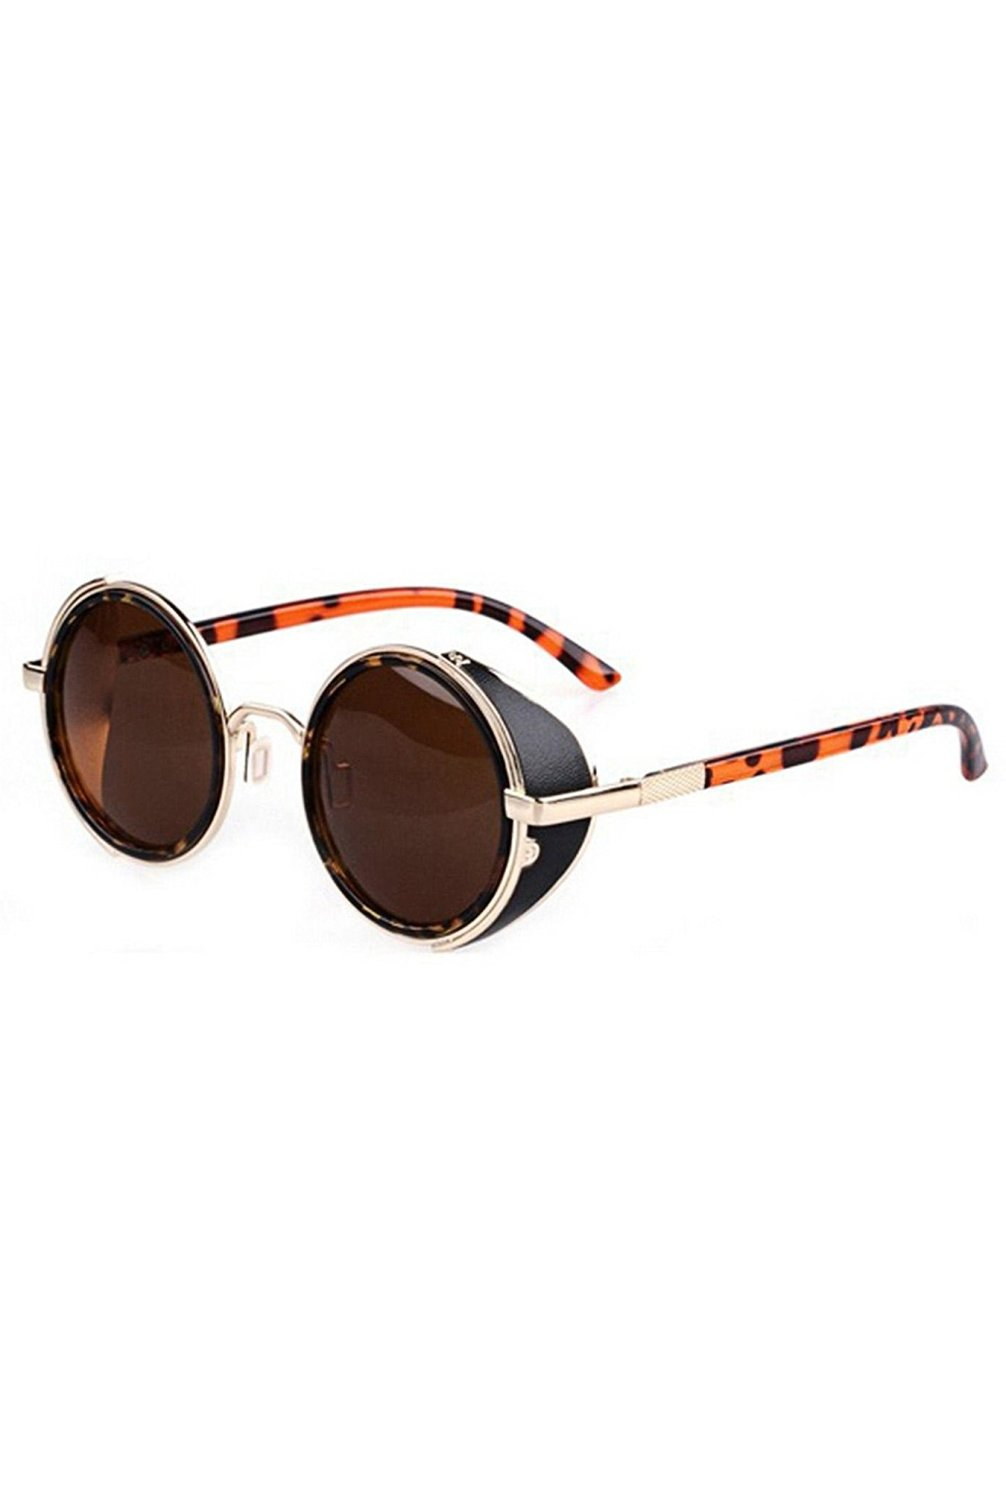 TOOGOO(R)80's Vintage Style Classic Round Steampunk Sunglasses-Dark Brown with Gold Edge + Leopard